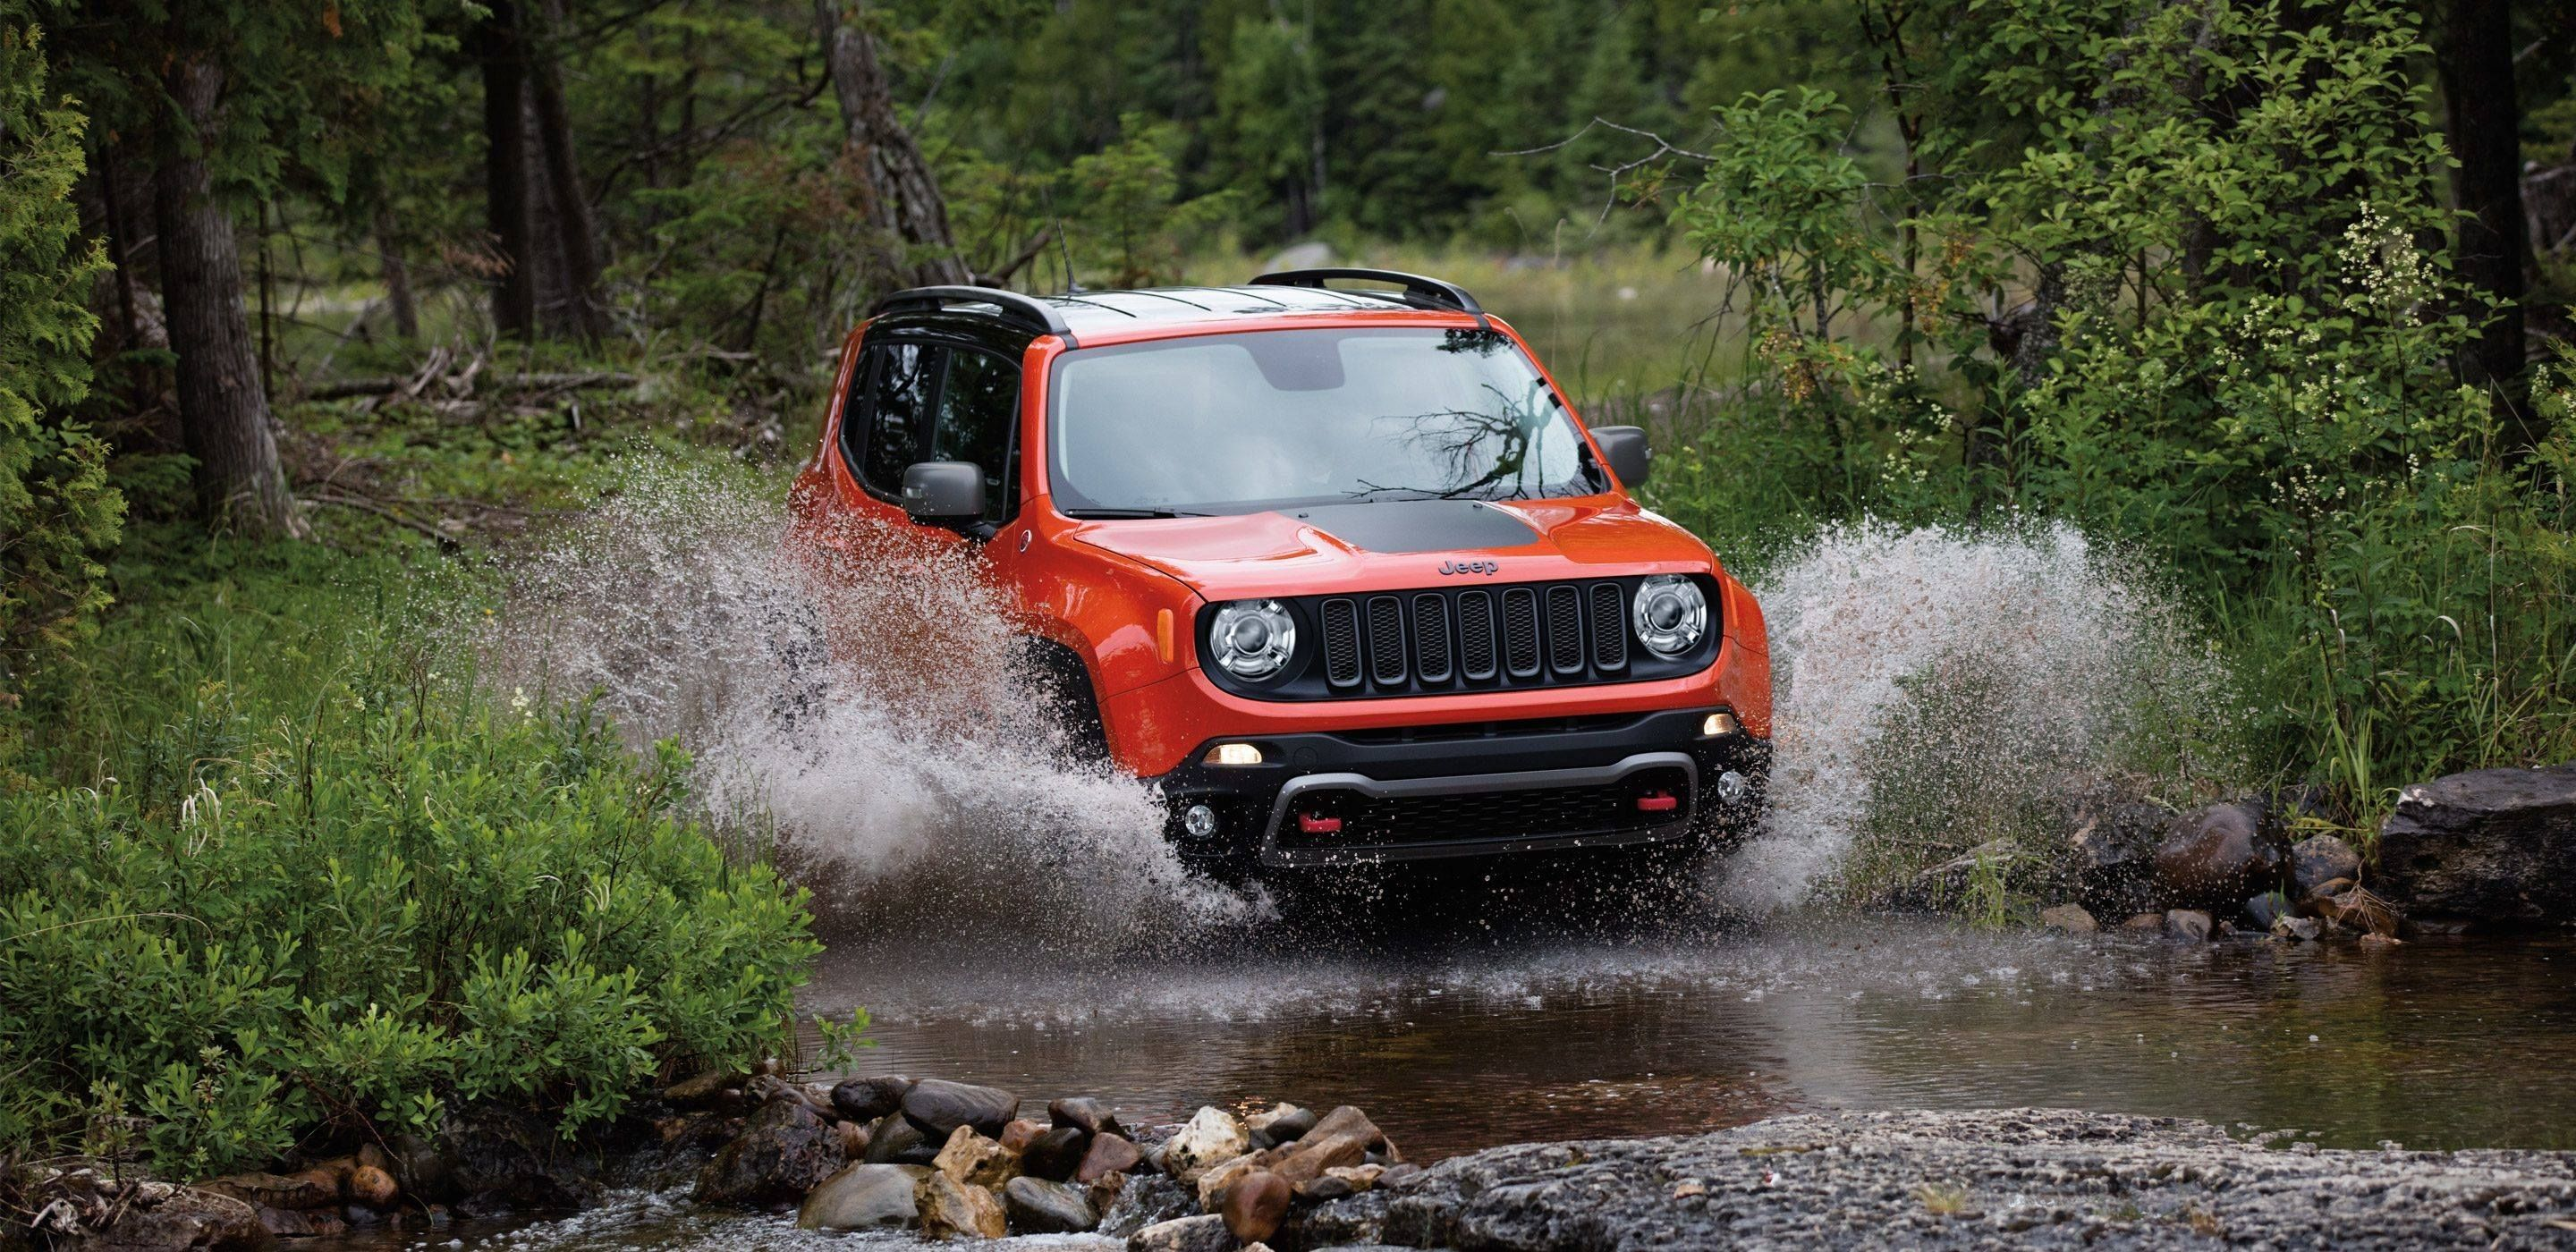 Really A Great Action Shot Jeep Gladiator Jeep Renegade